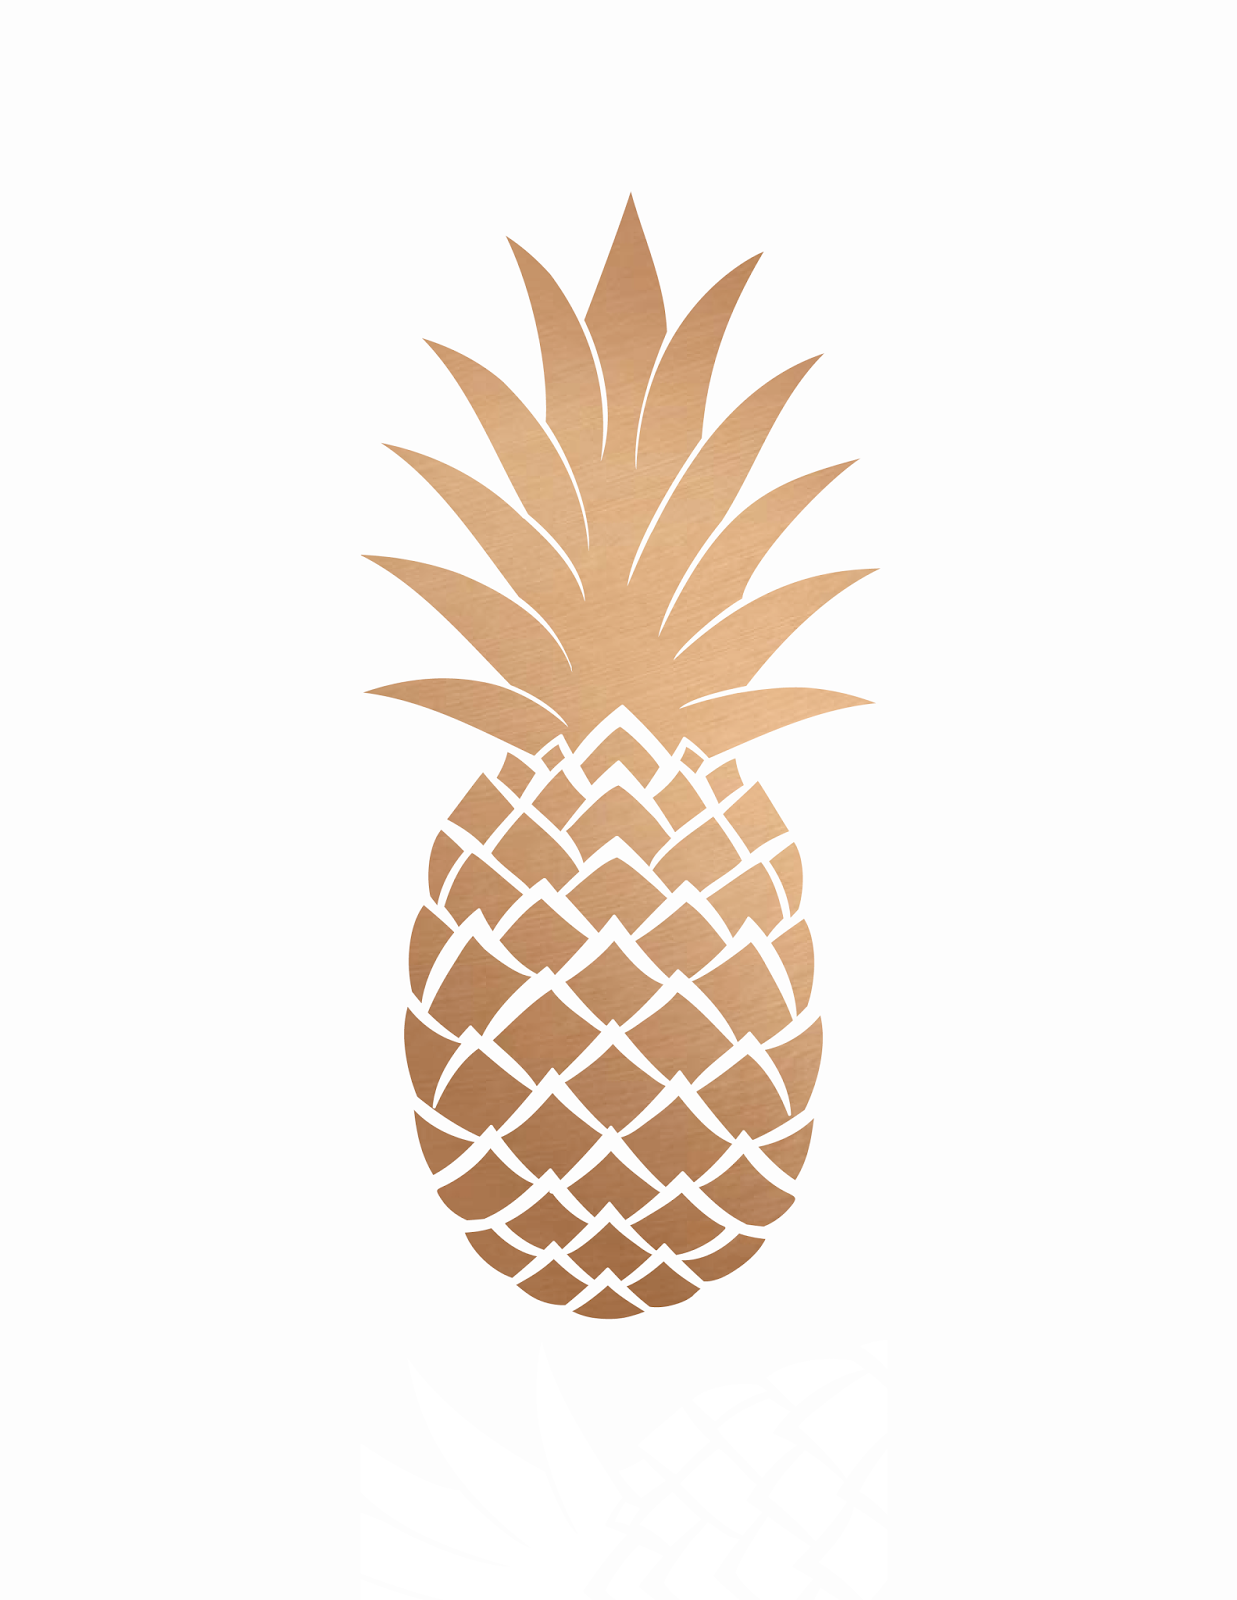 image relating to Printable Pineapple identified as no cost pineapple printables insert some exciting toward your house decor!